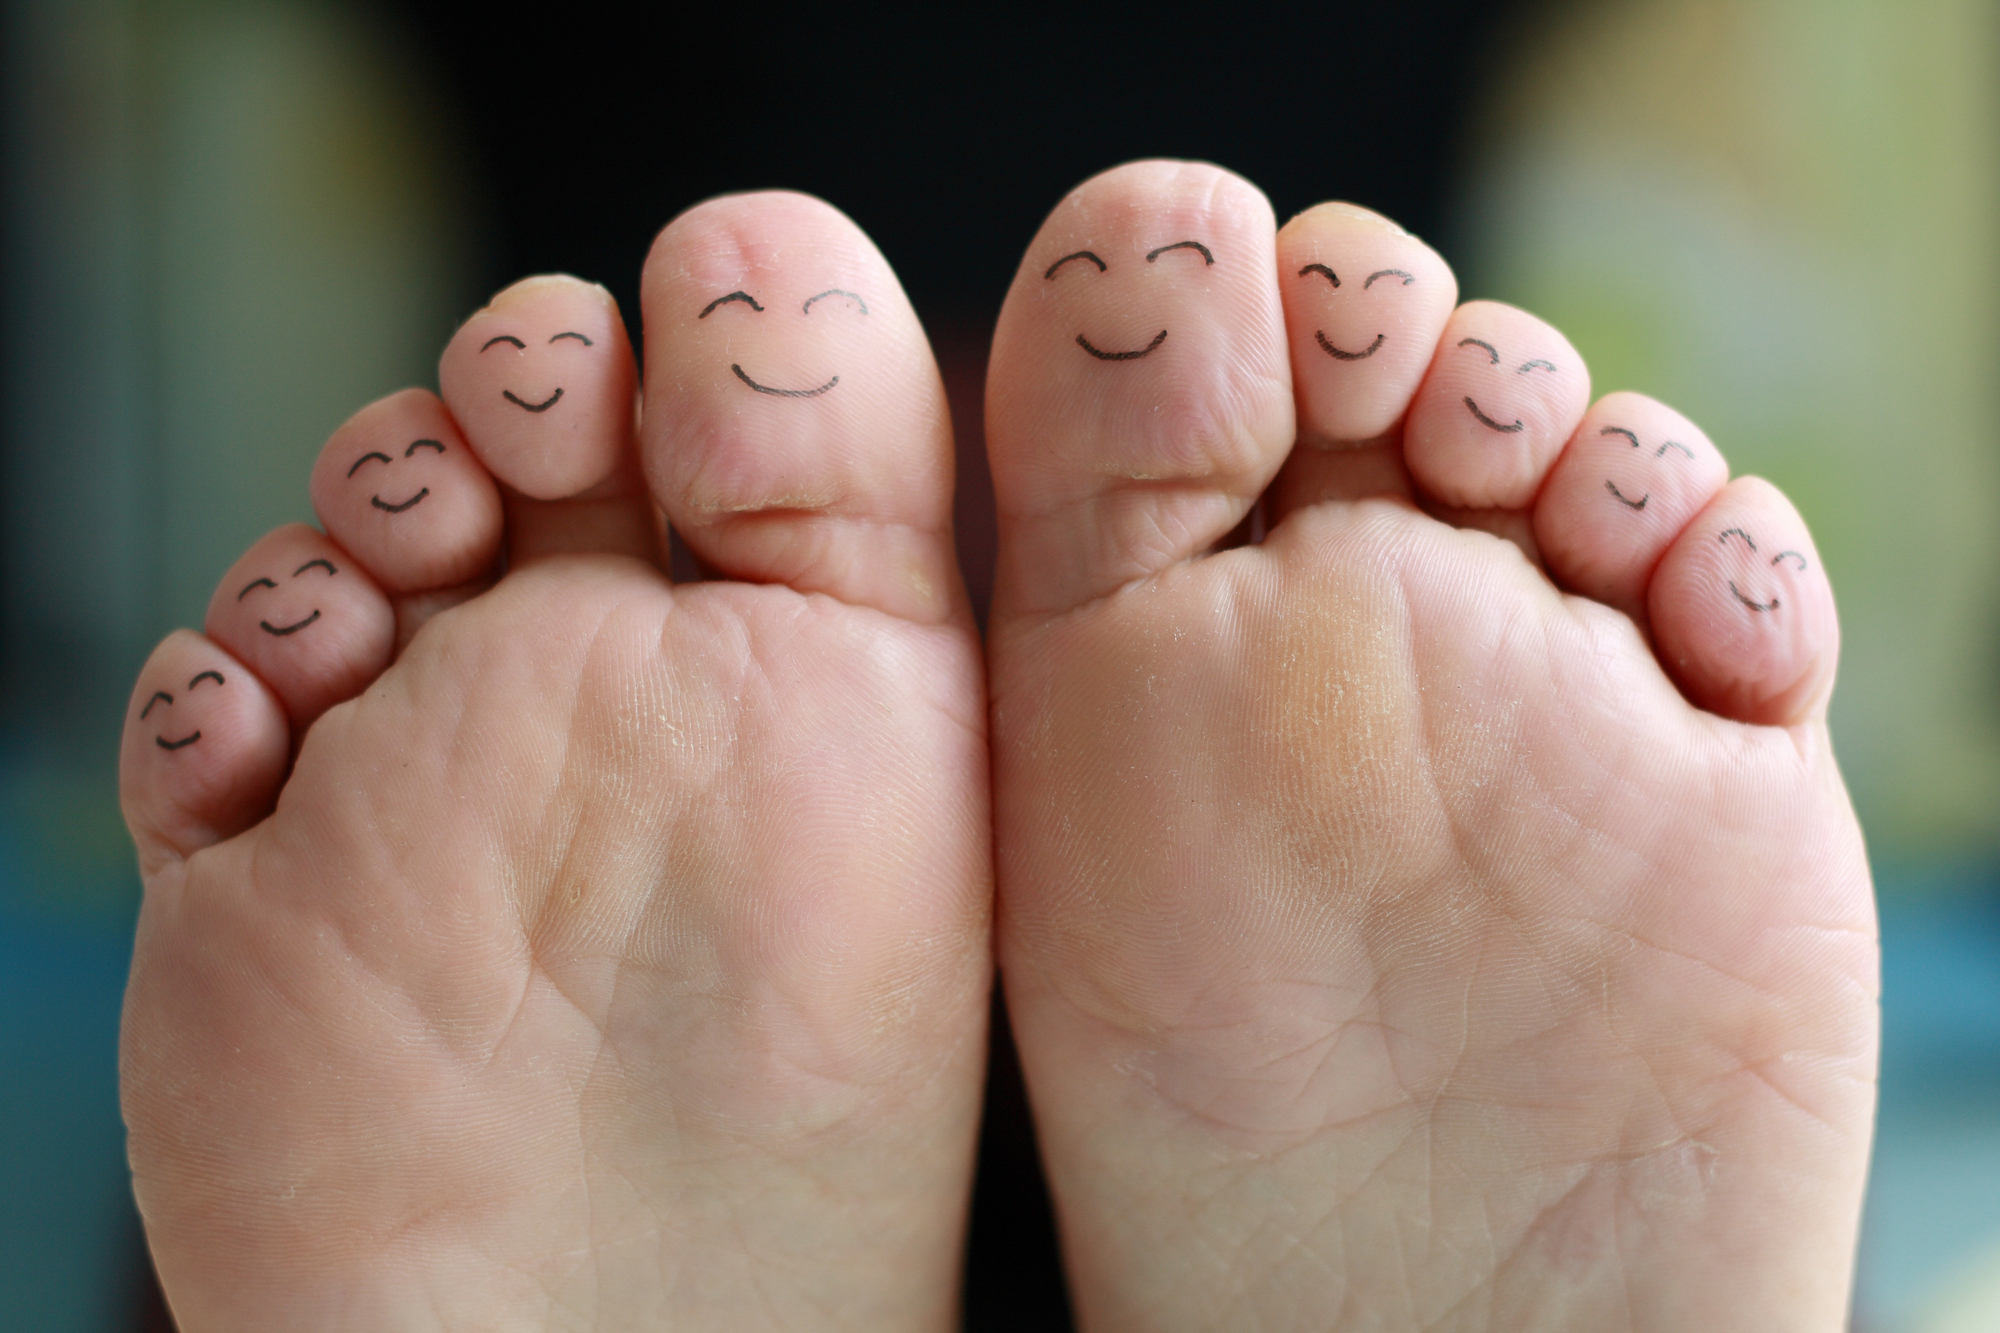 Happy Feet - Prevent Bunions from forming